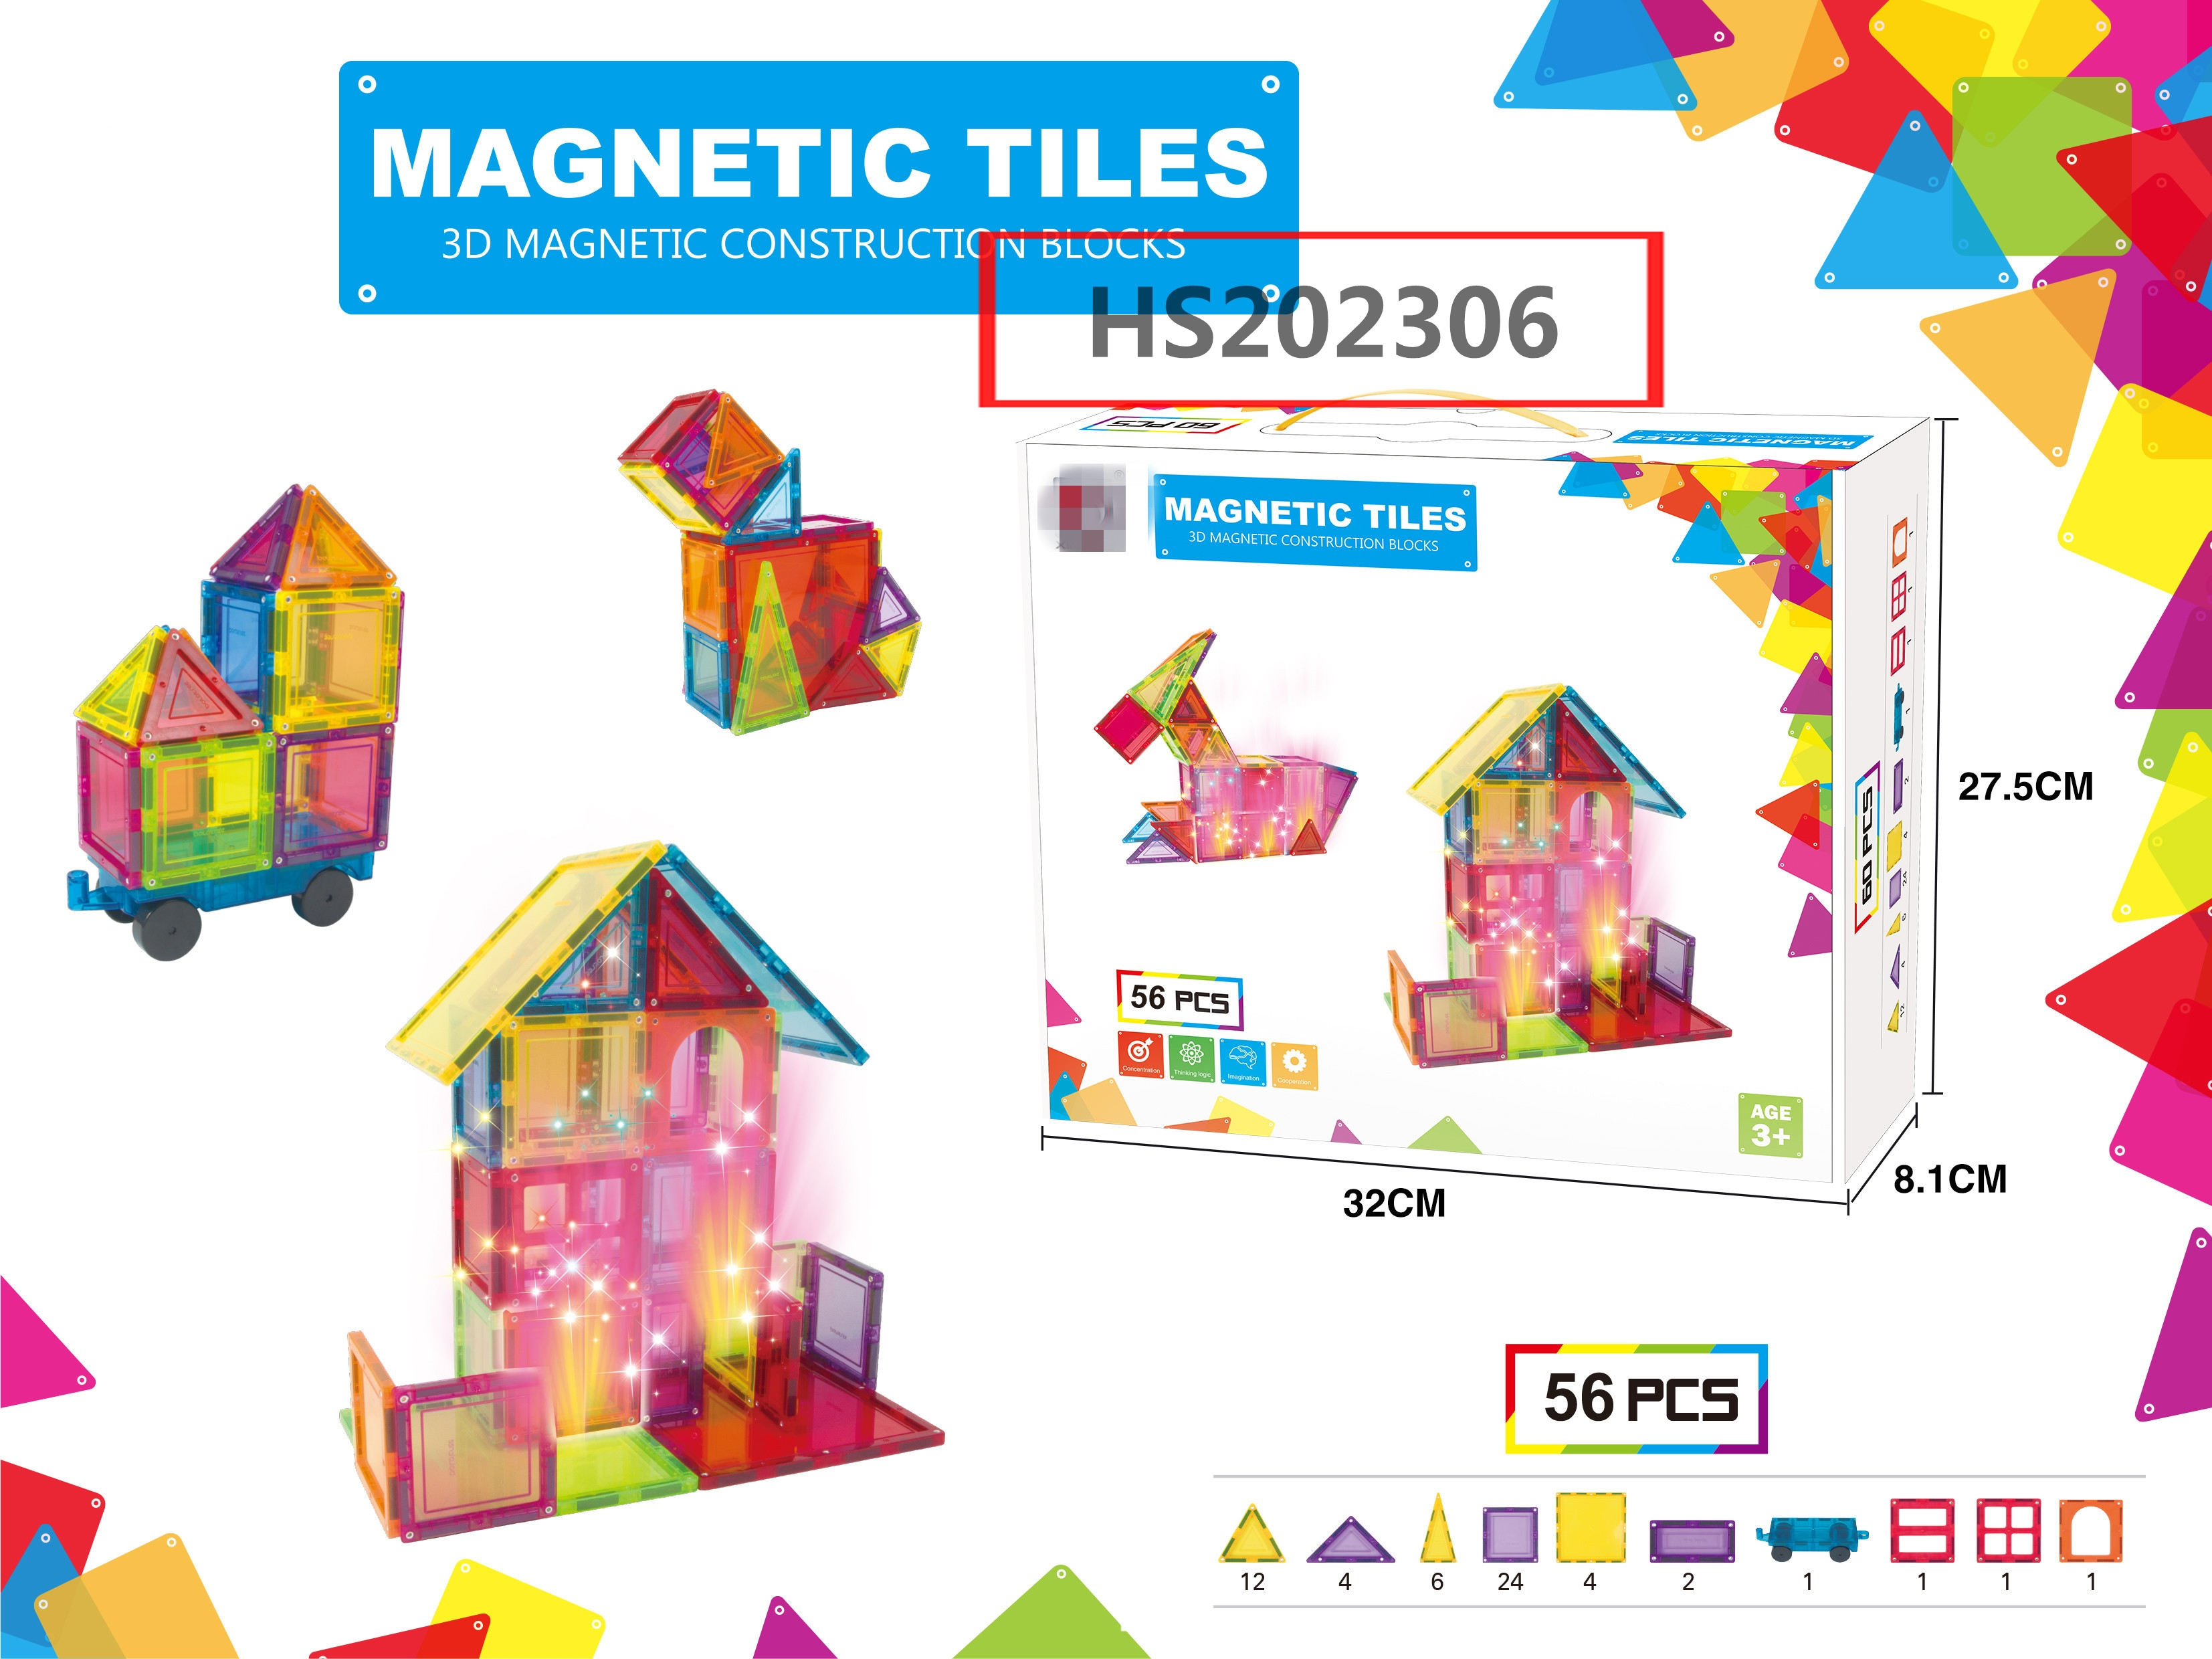 HS202306, Huwsin Toys, Magnetic magic cube,magnetic building block, Educational toy